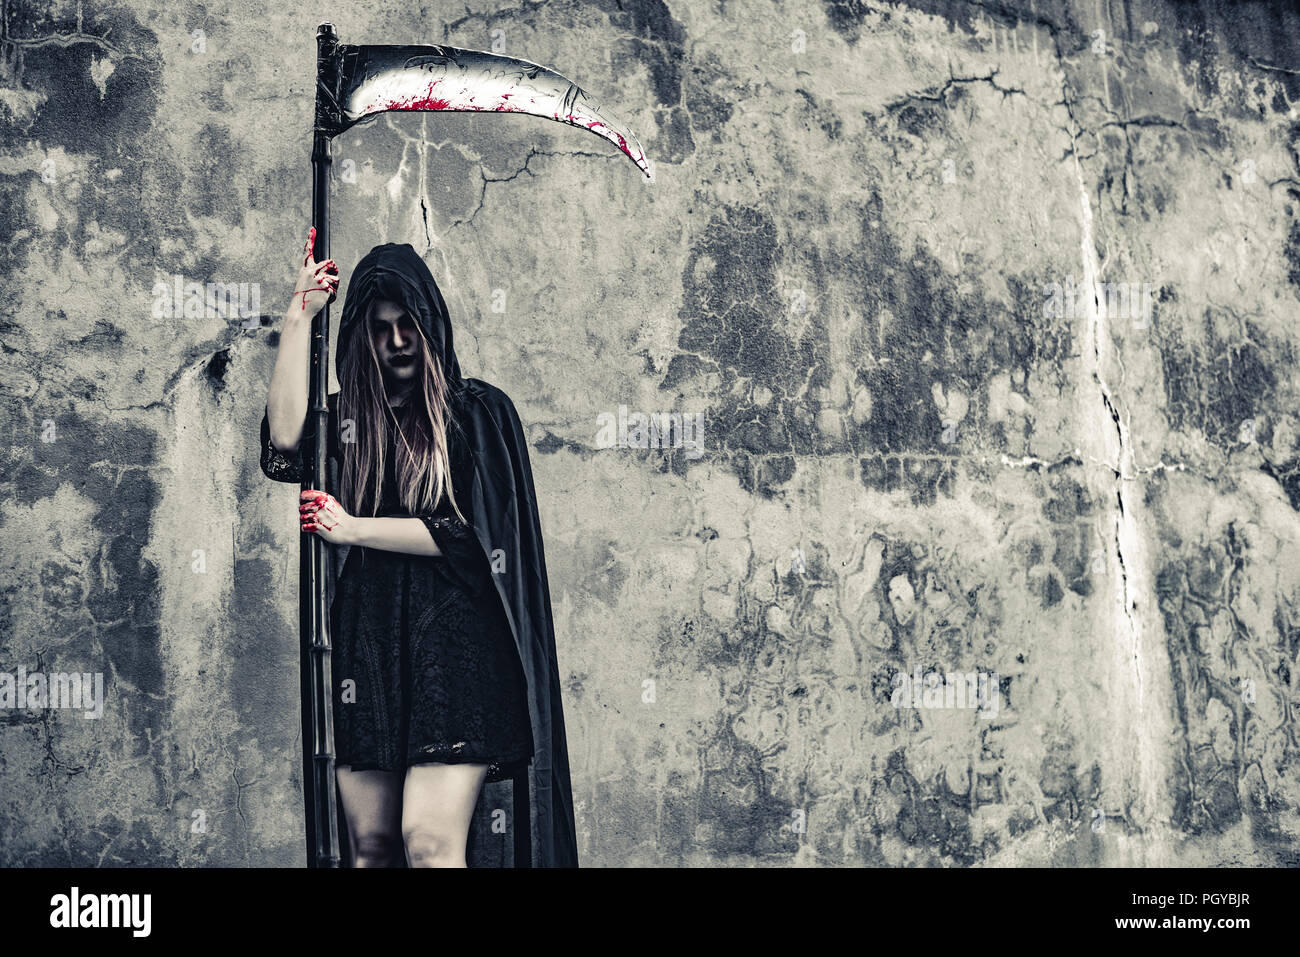 Demon witch with reaper standing in front of grunge wall background. Halloween and Religious concept. Demon angel and Satan theme. - Stock Image